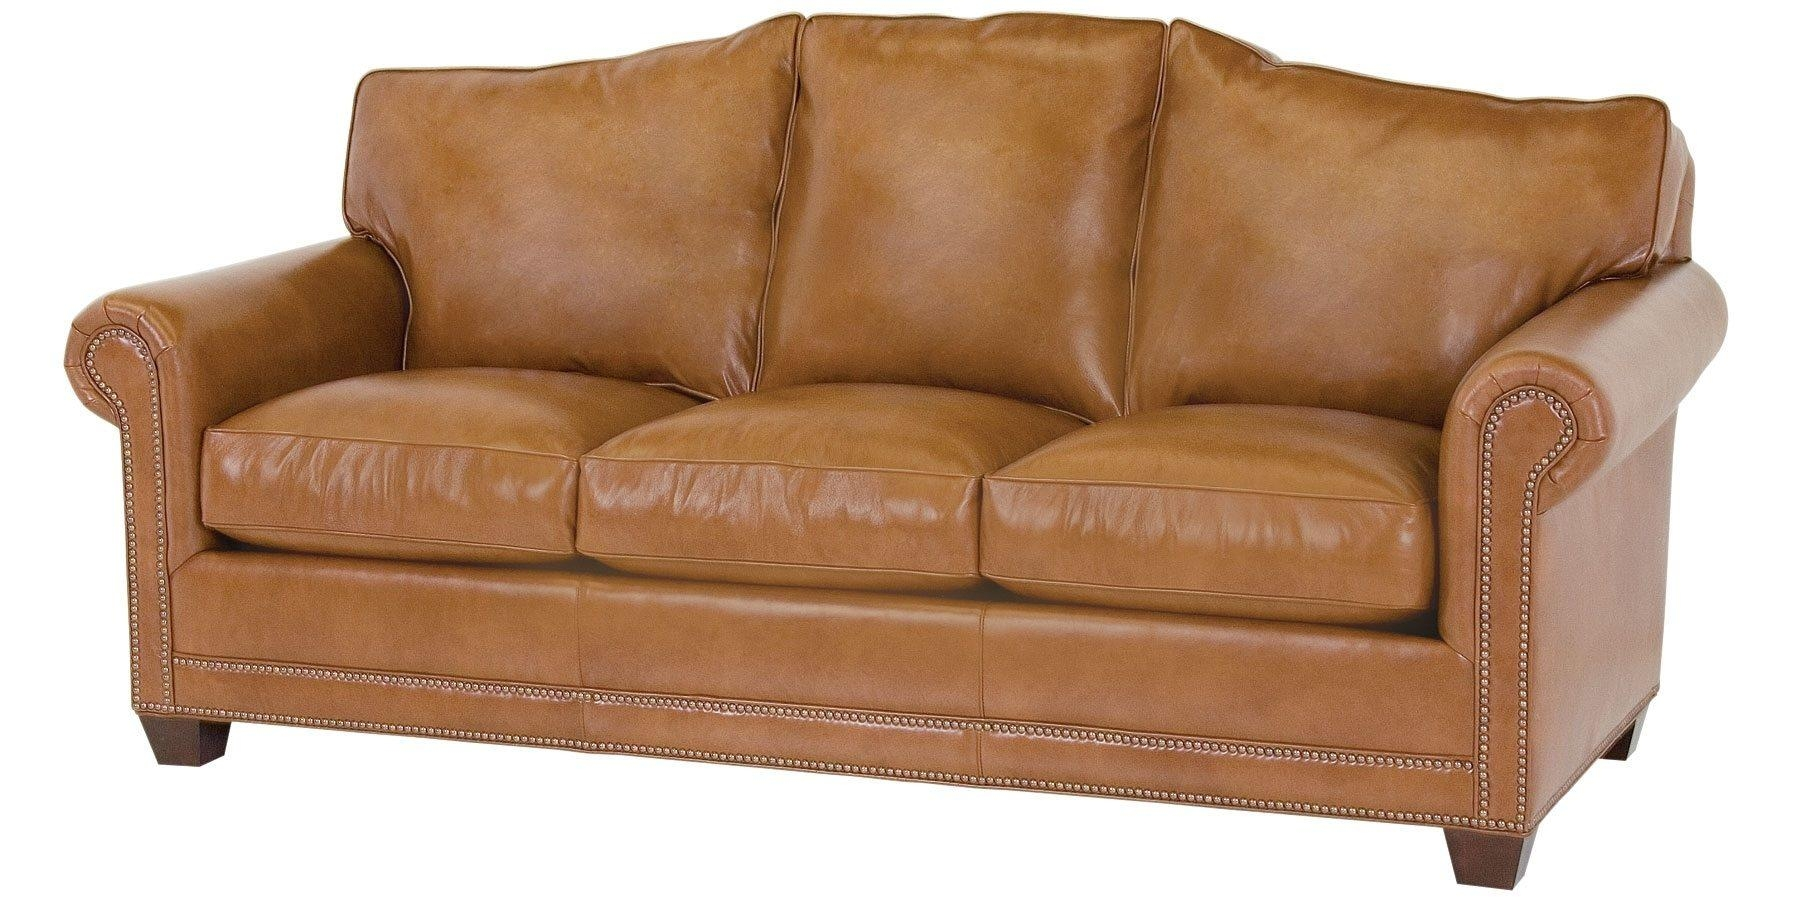 Sofas Center : Best Leather Couches Ideas On Pinterest Camel With Camel Color Sofas (View 20 of 20)